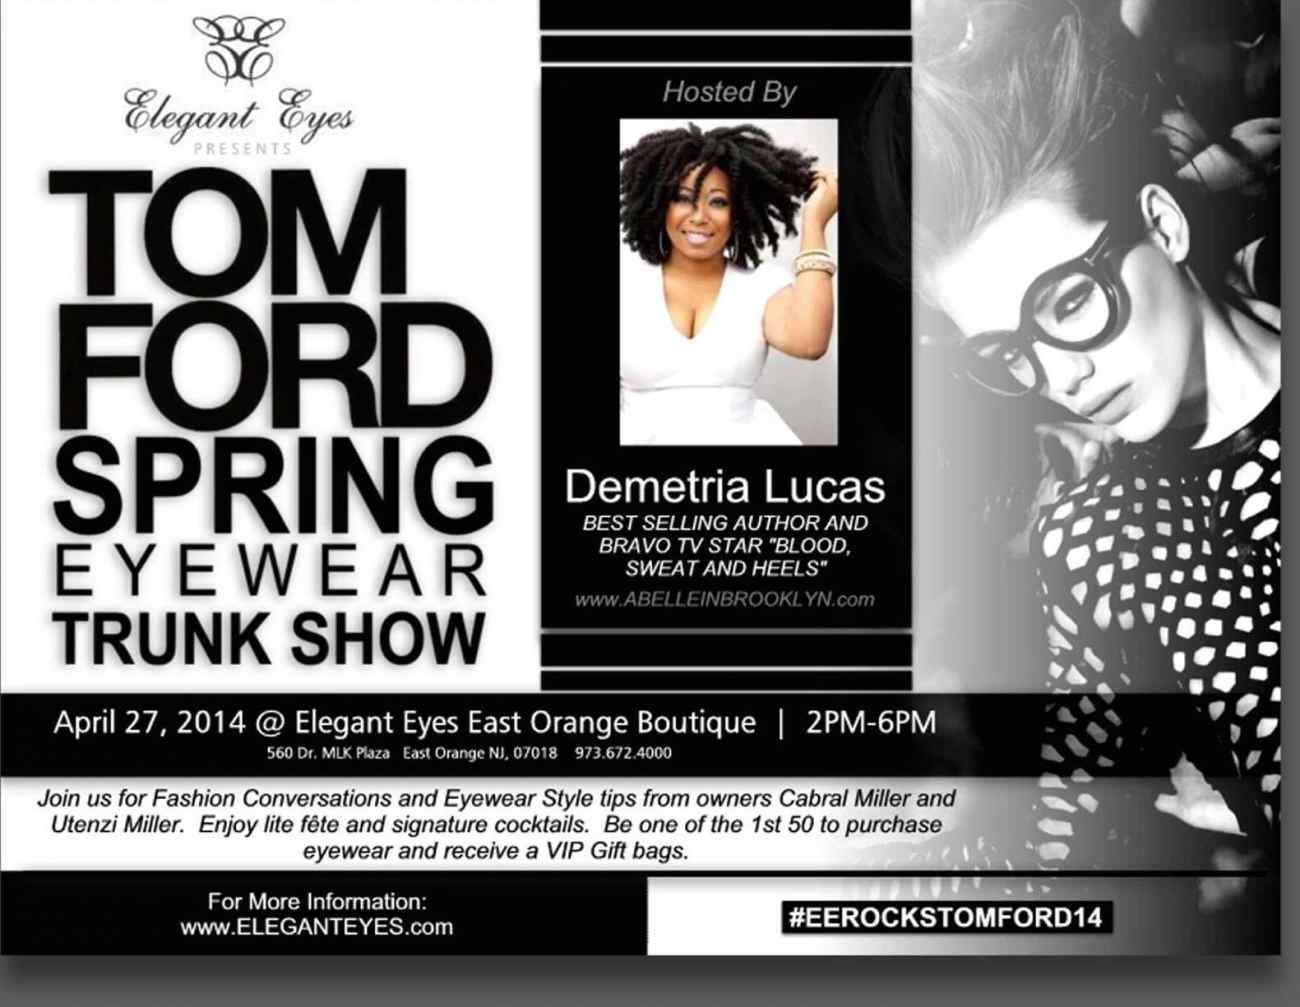 Tom Ford Trunk Show at Elegant Eyes (East Orange, NJ)